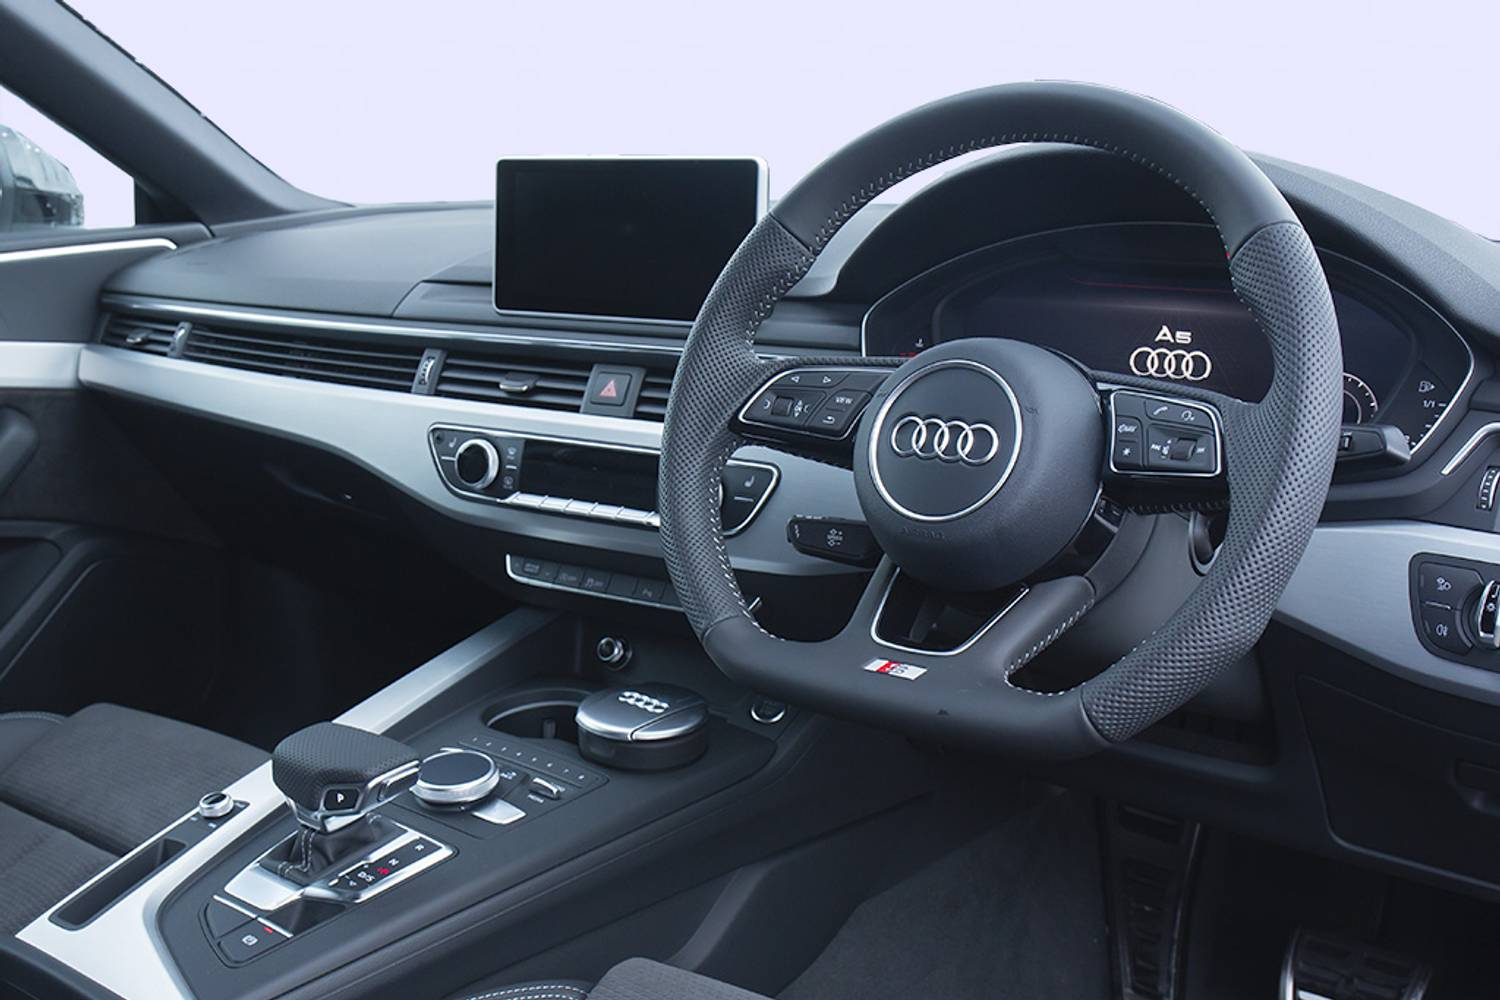 new audi a5 coupe 2 0 tfsi 252 ps quattro s line 2 door. Black Bedroom Furniture Sets. Home Design Ideas